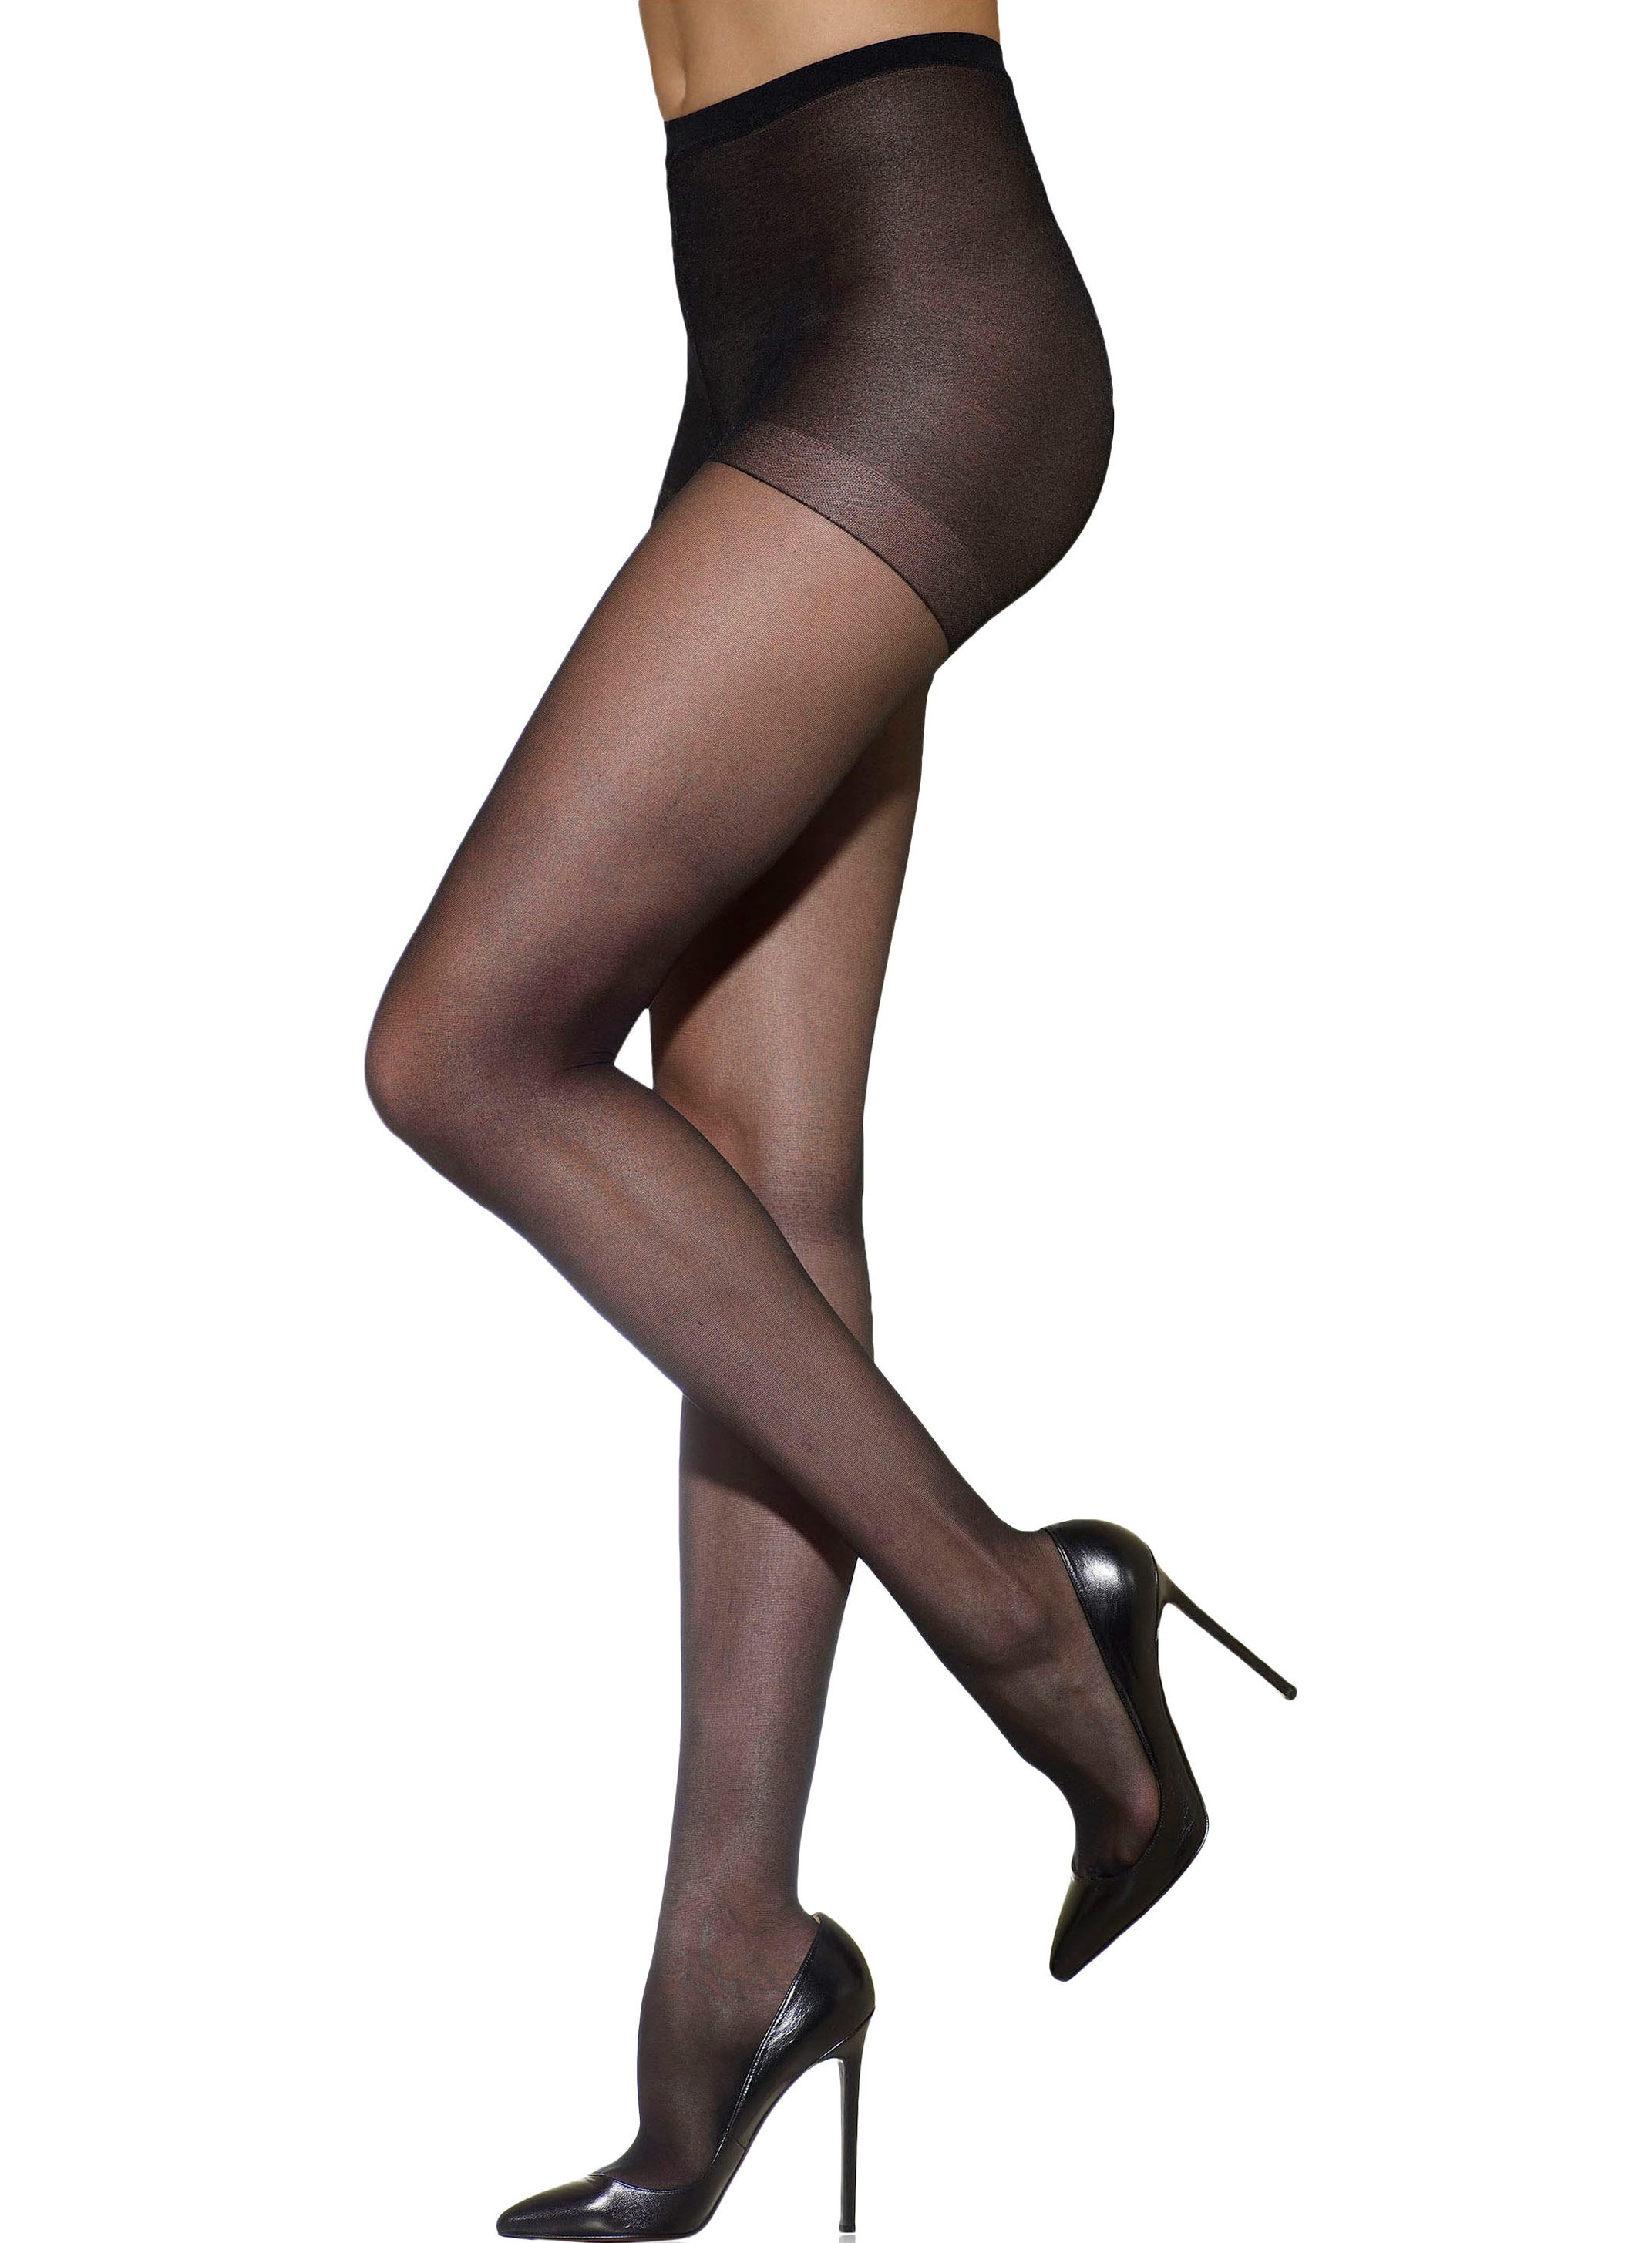 Top Pantyhose Silky 43